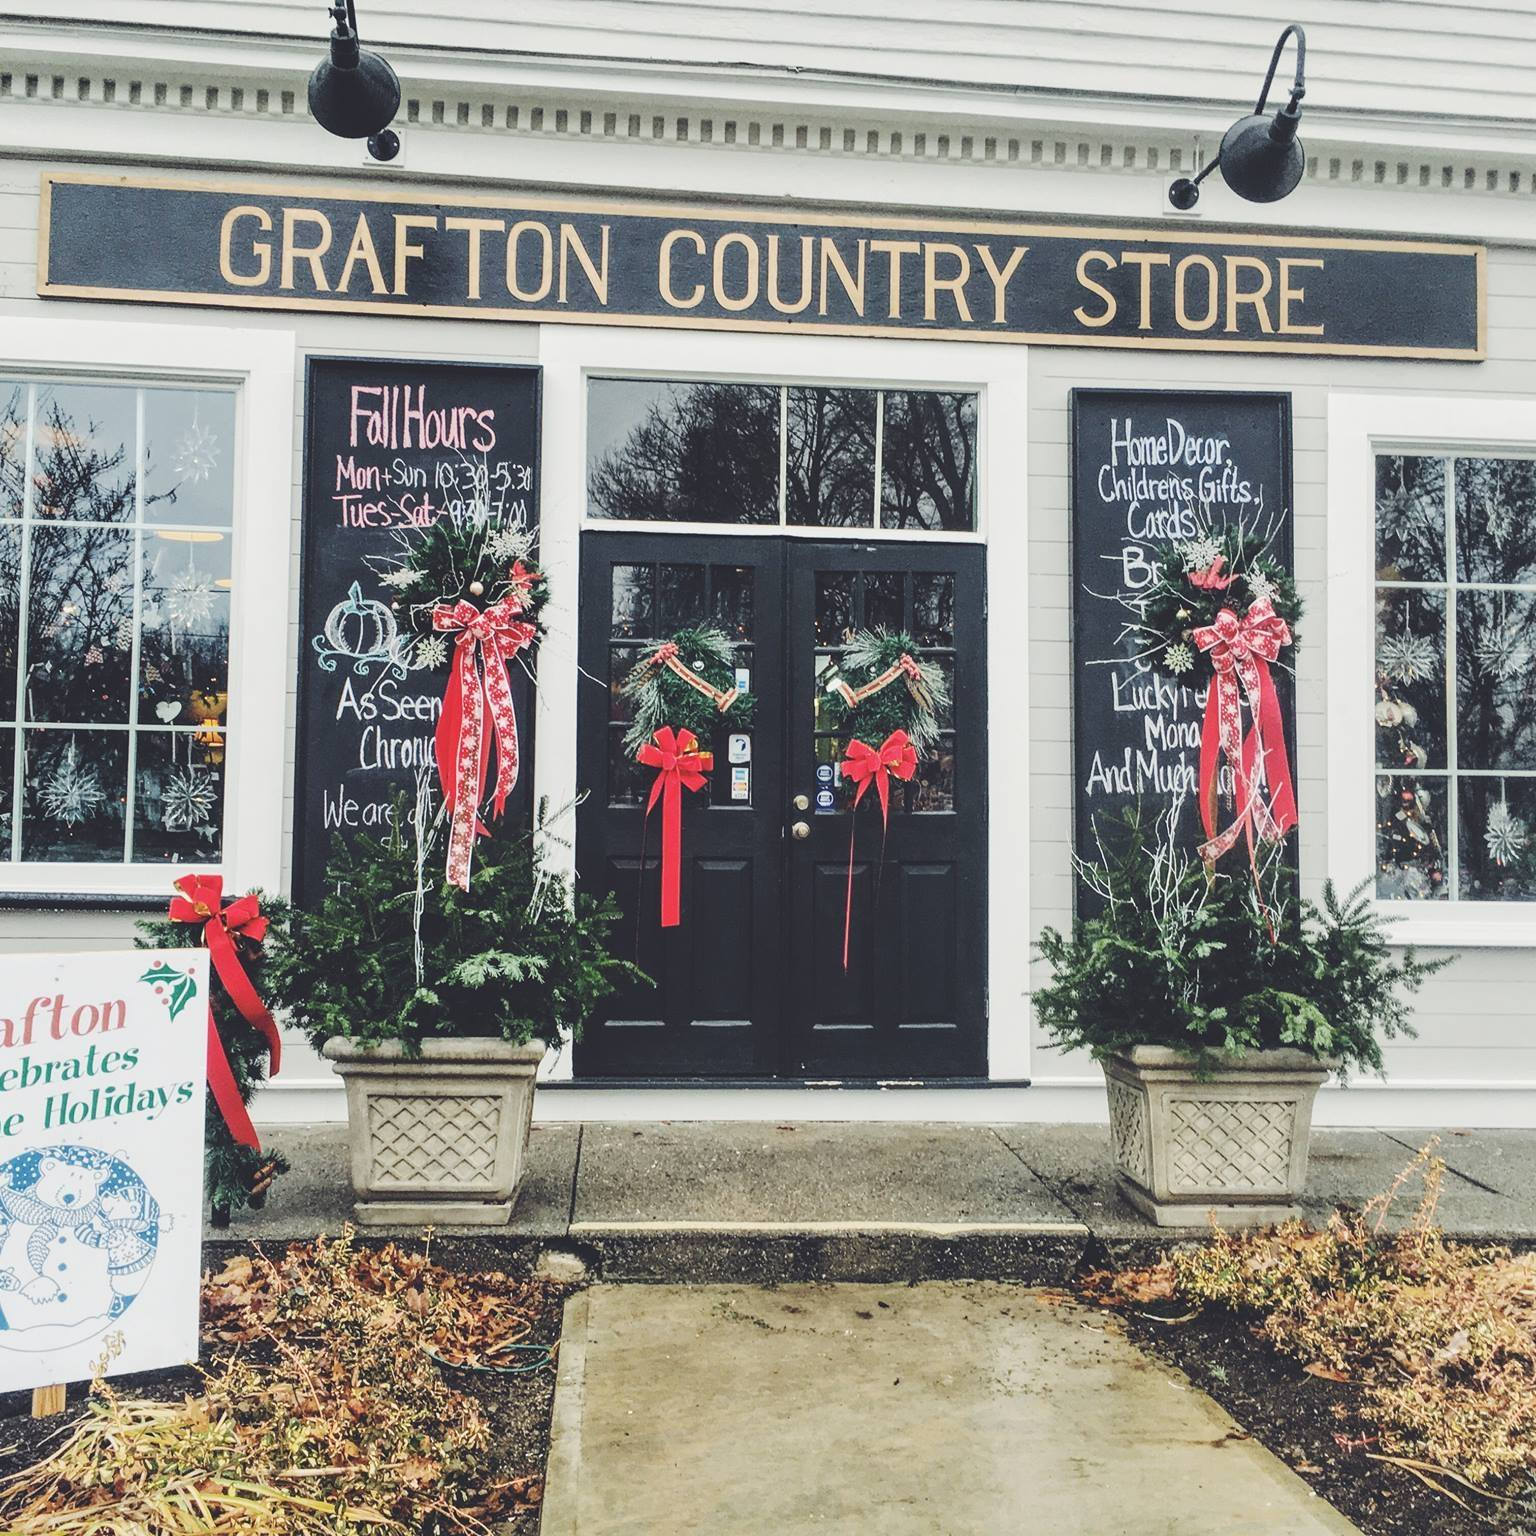 The Grafton Country Store, 2 Grafton Common, Grafton, MA